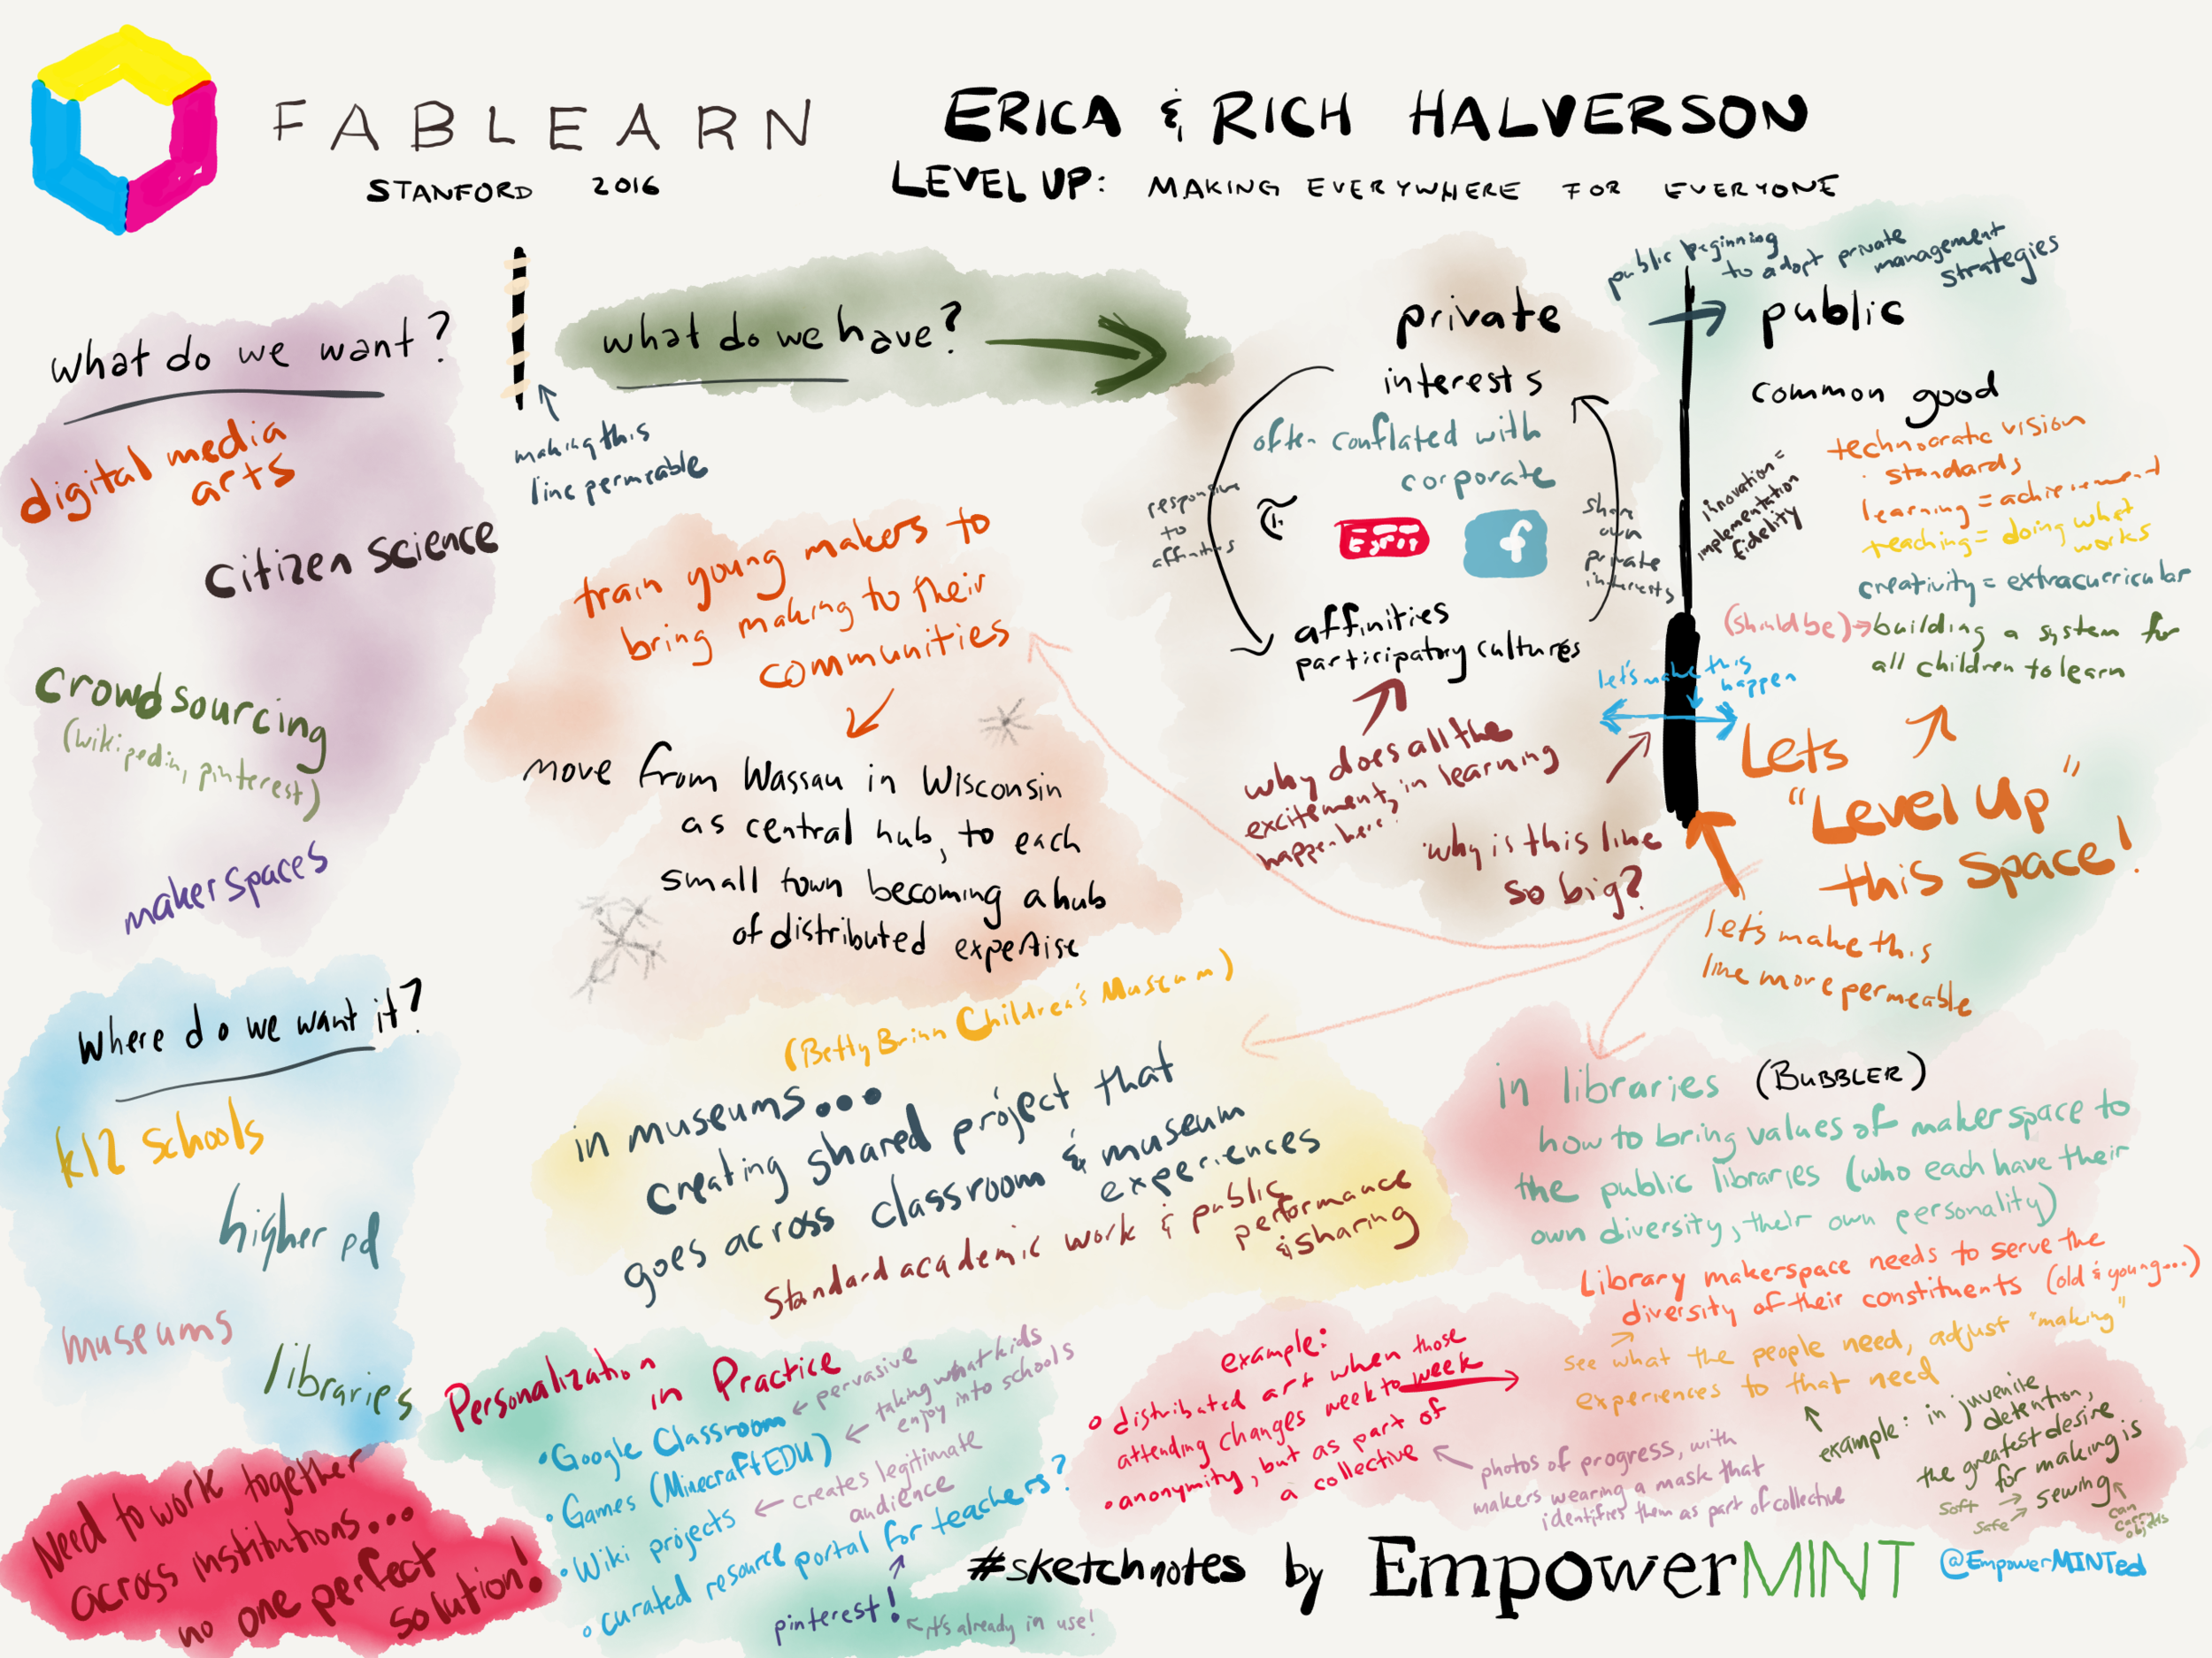 Erica_and_Rich_Halverson_FabLearn.PNG